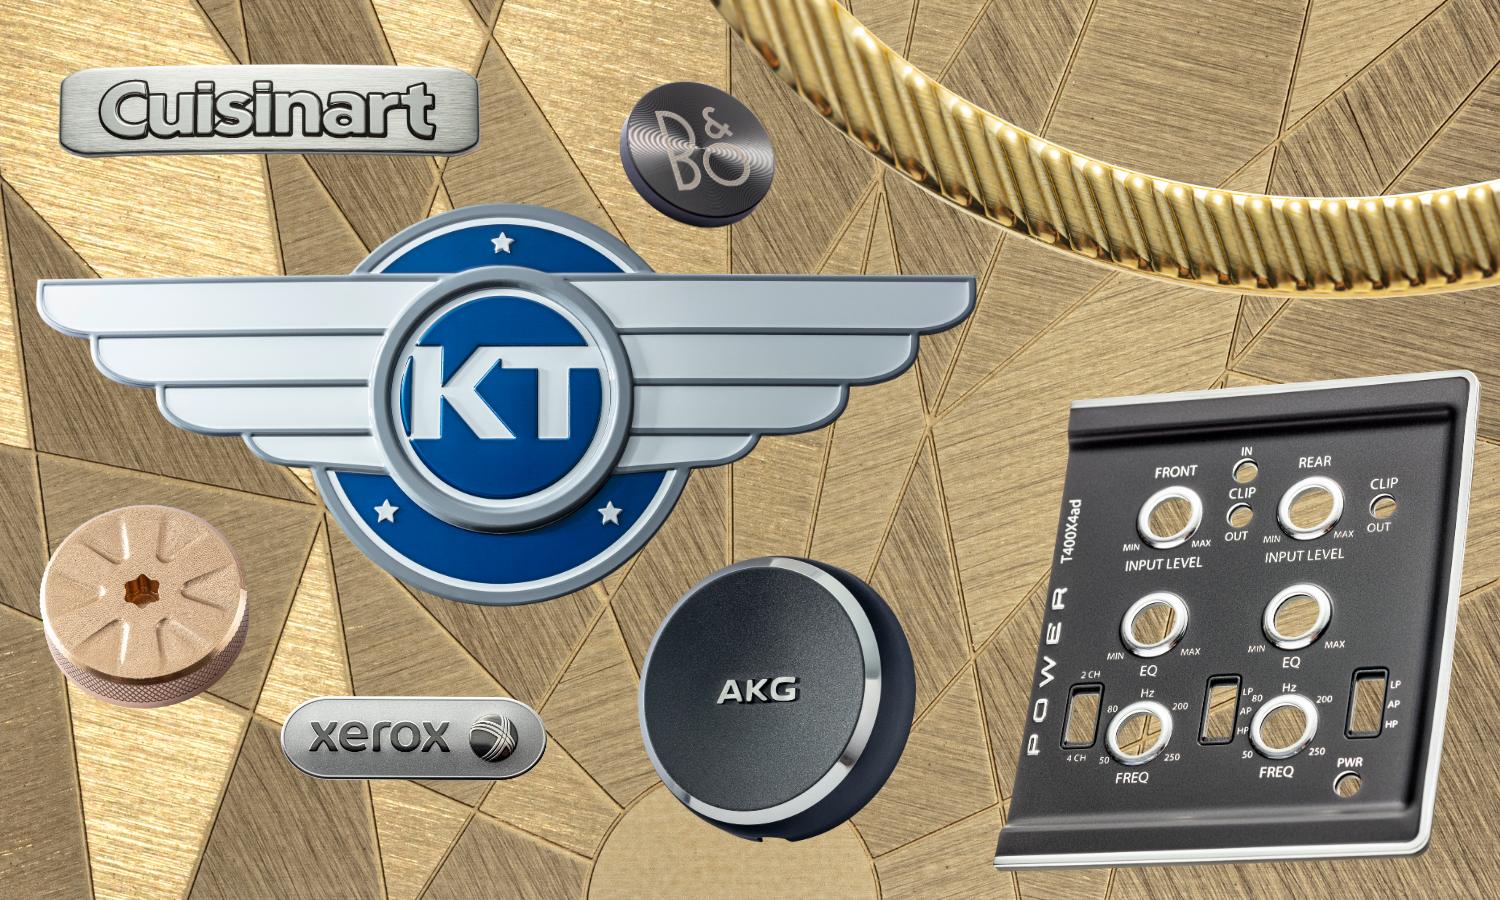 collage of branded name plates; cuisinart rectangle badge, oval shaped xerox badge, circle shaped AKG headphone cap, radial spin cut B&O circle badge, selective brushed gold colored background.